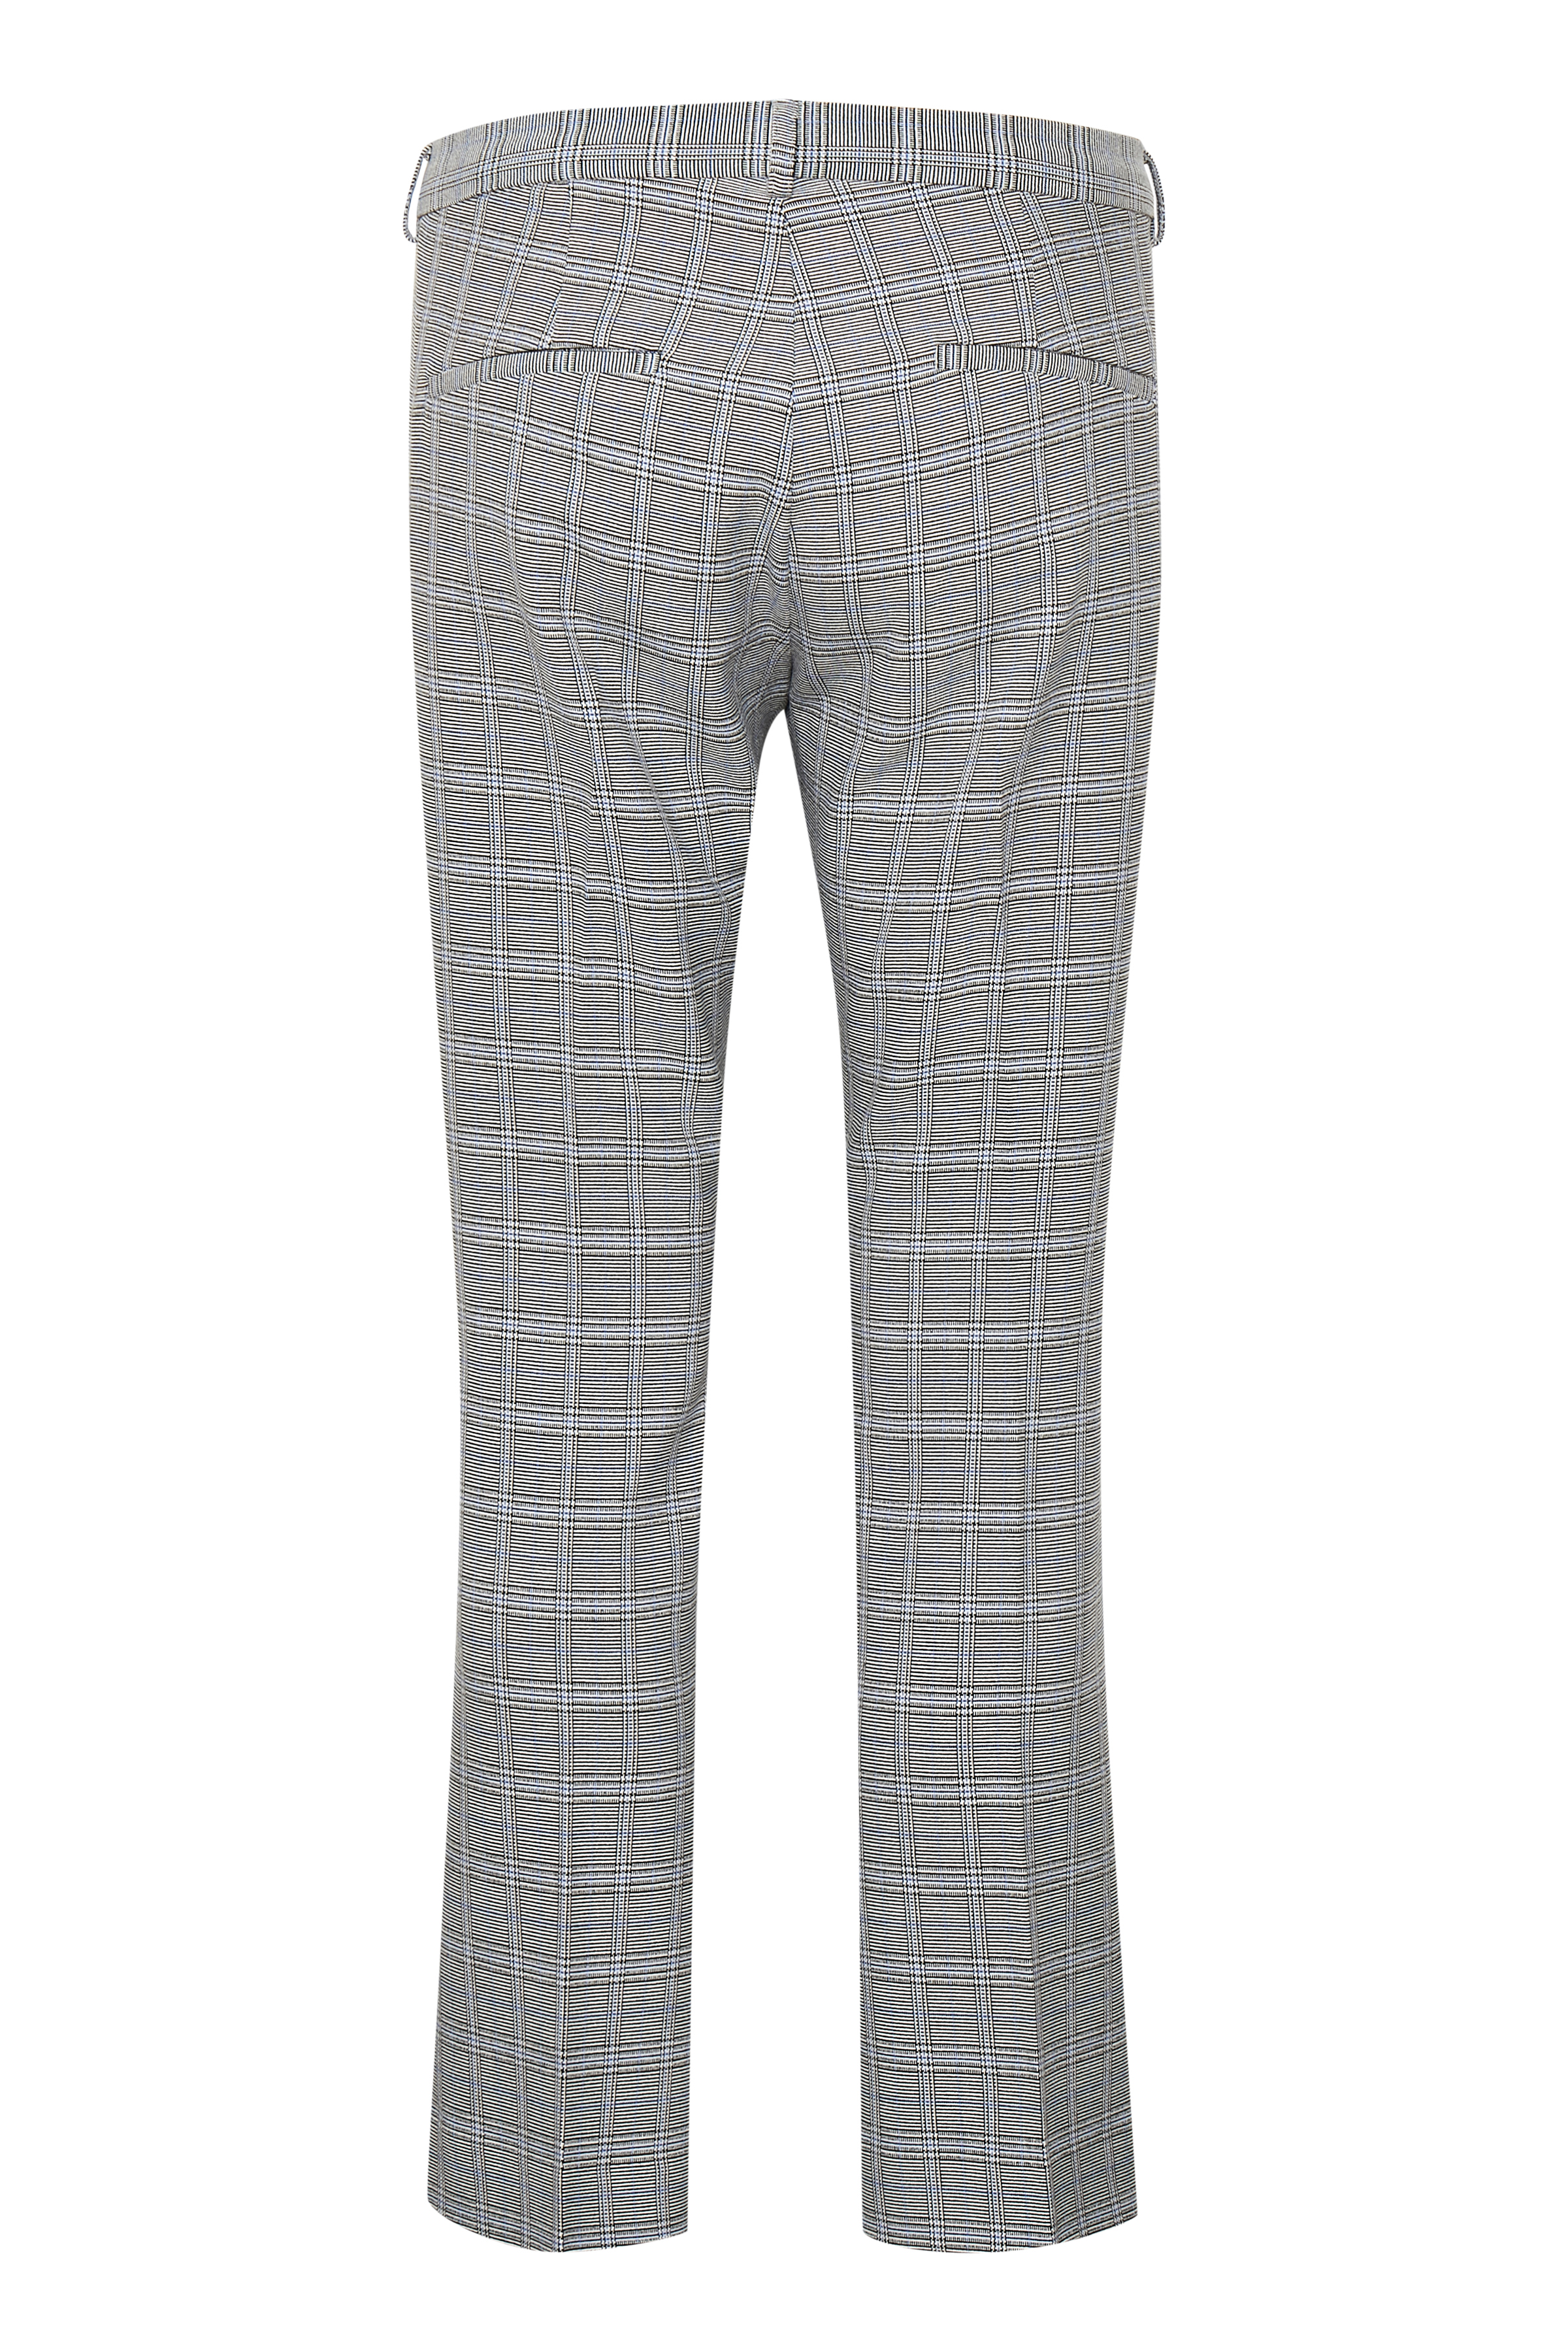 Black and White Pants Suiting – Køb Black and White Pants Suiting fra str. 32-42 her